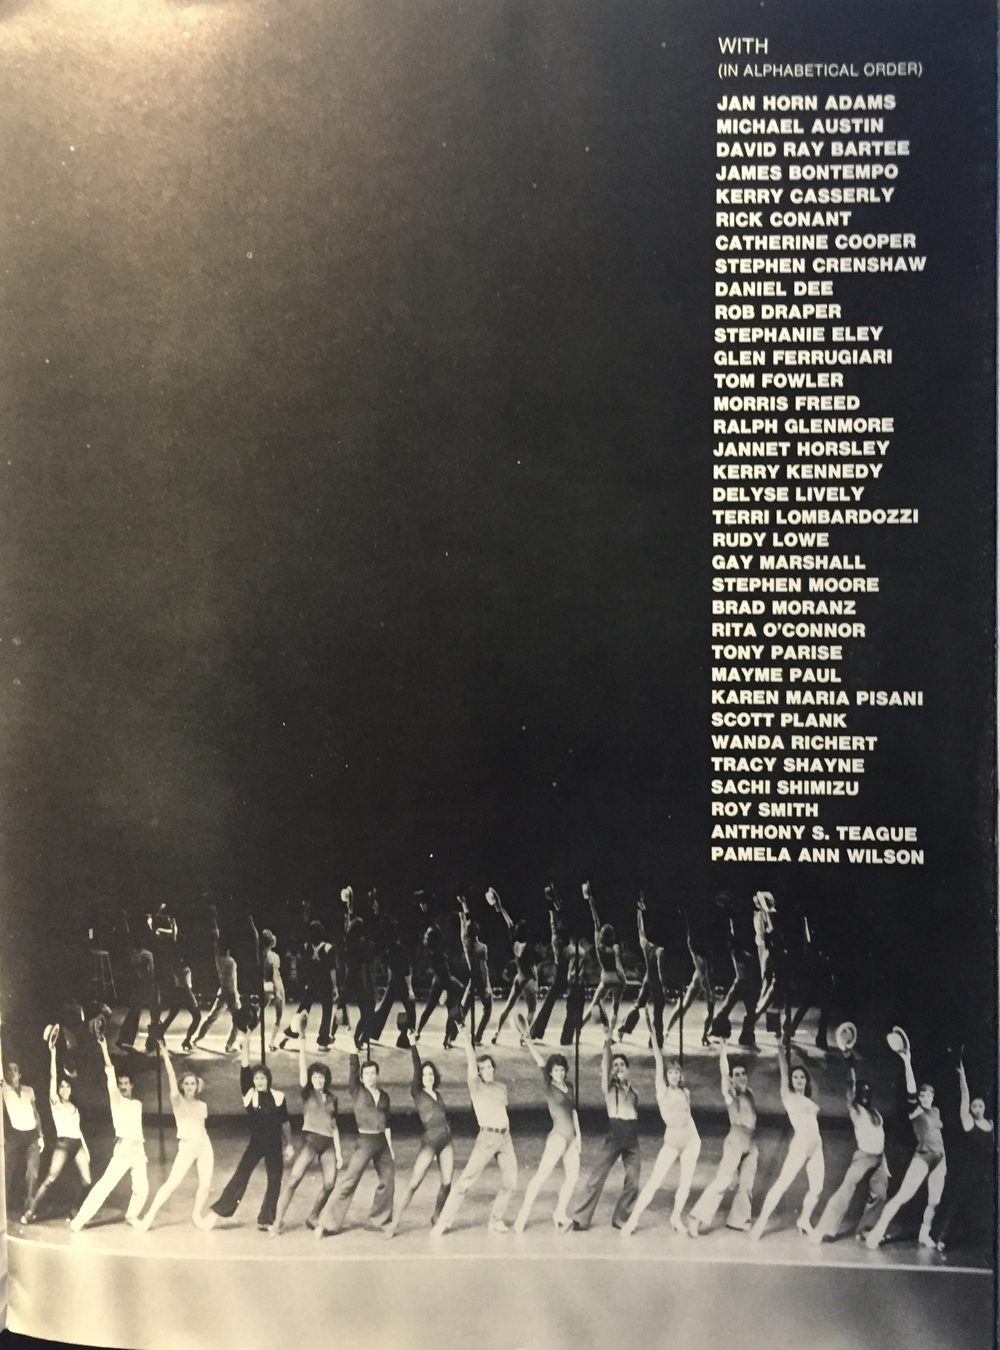 1979-08-28-ACHORUSLINE-PROGRAM3-CASTLIST.JPG